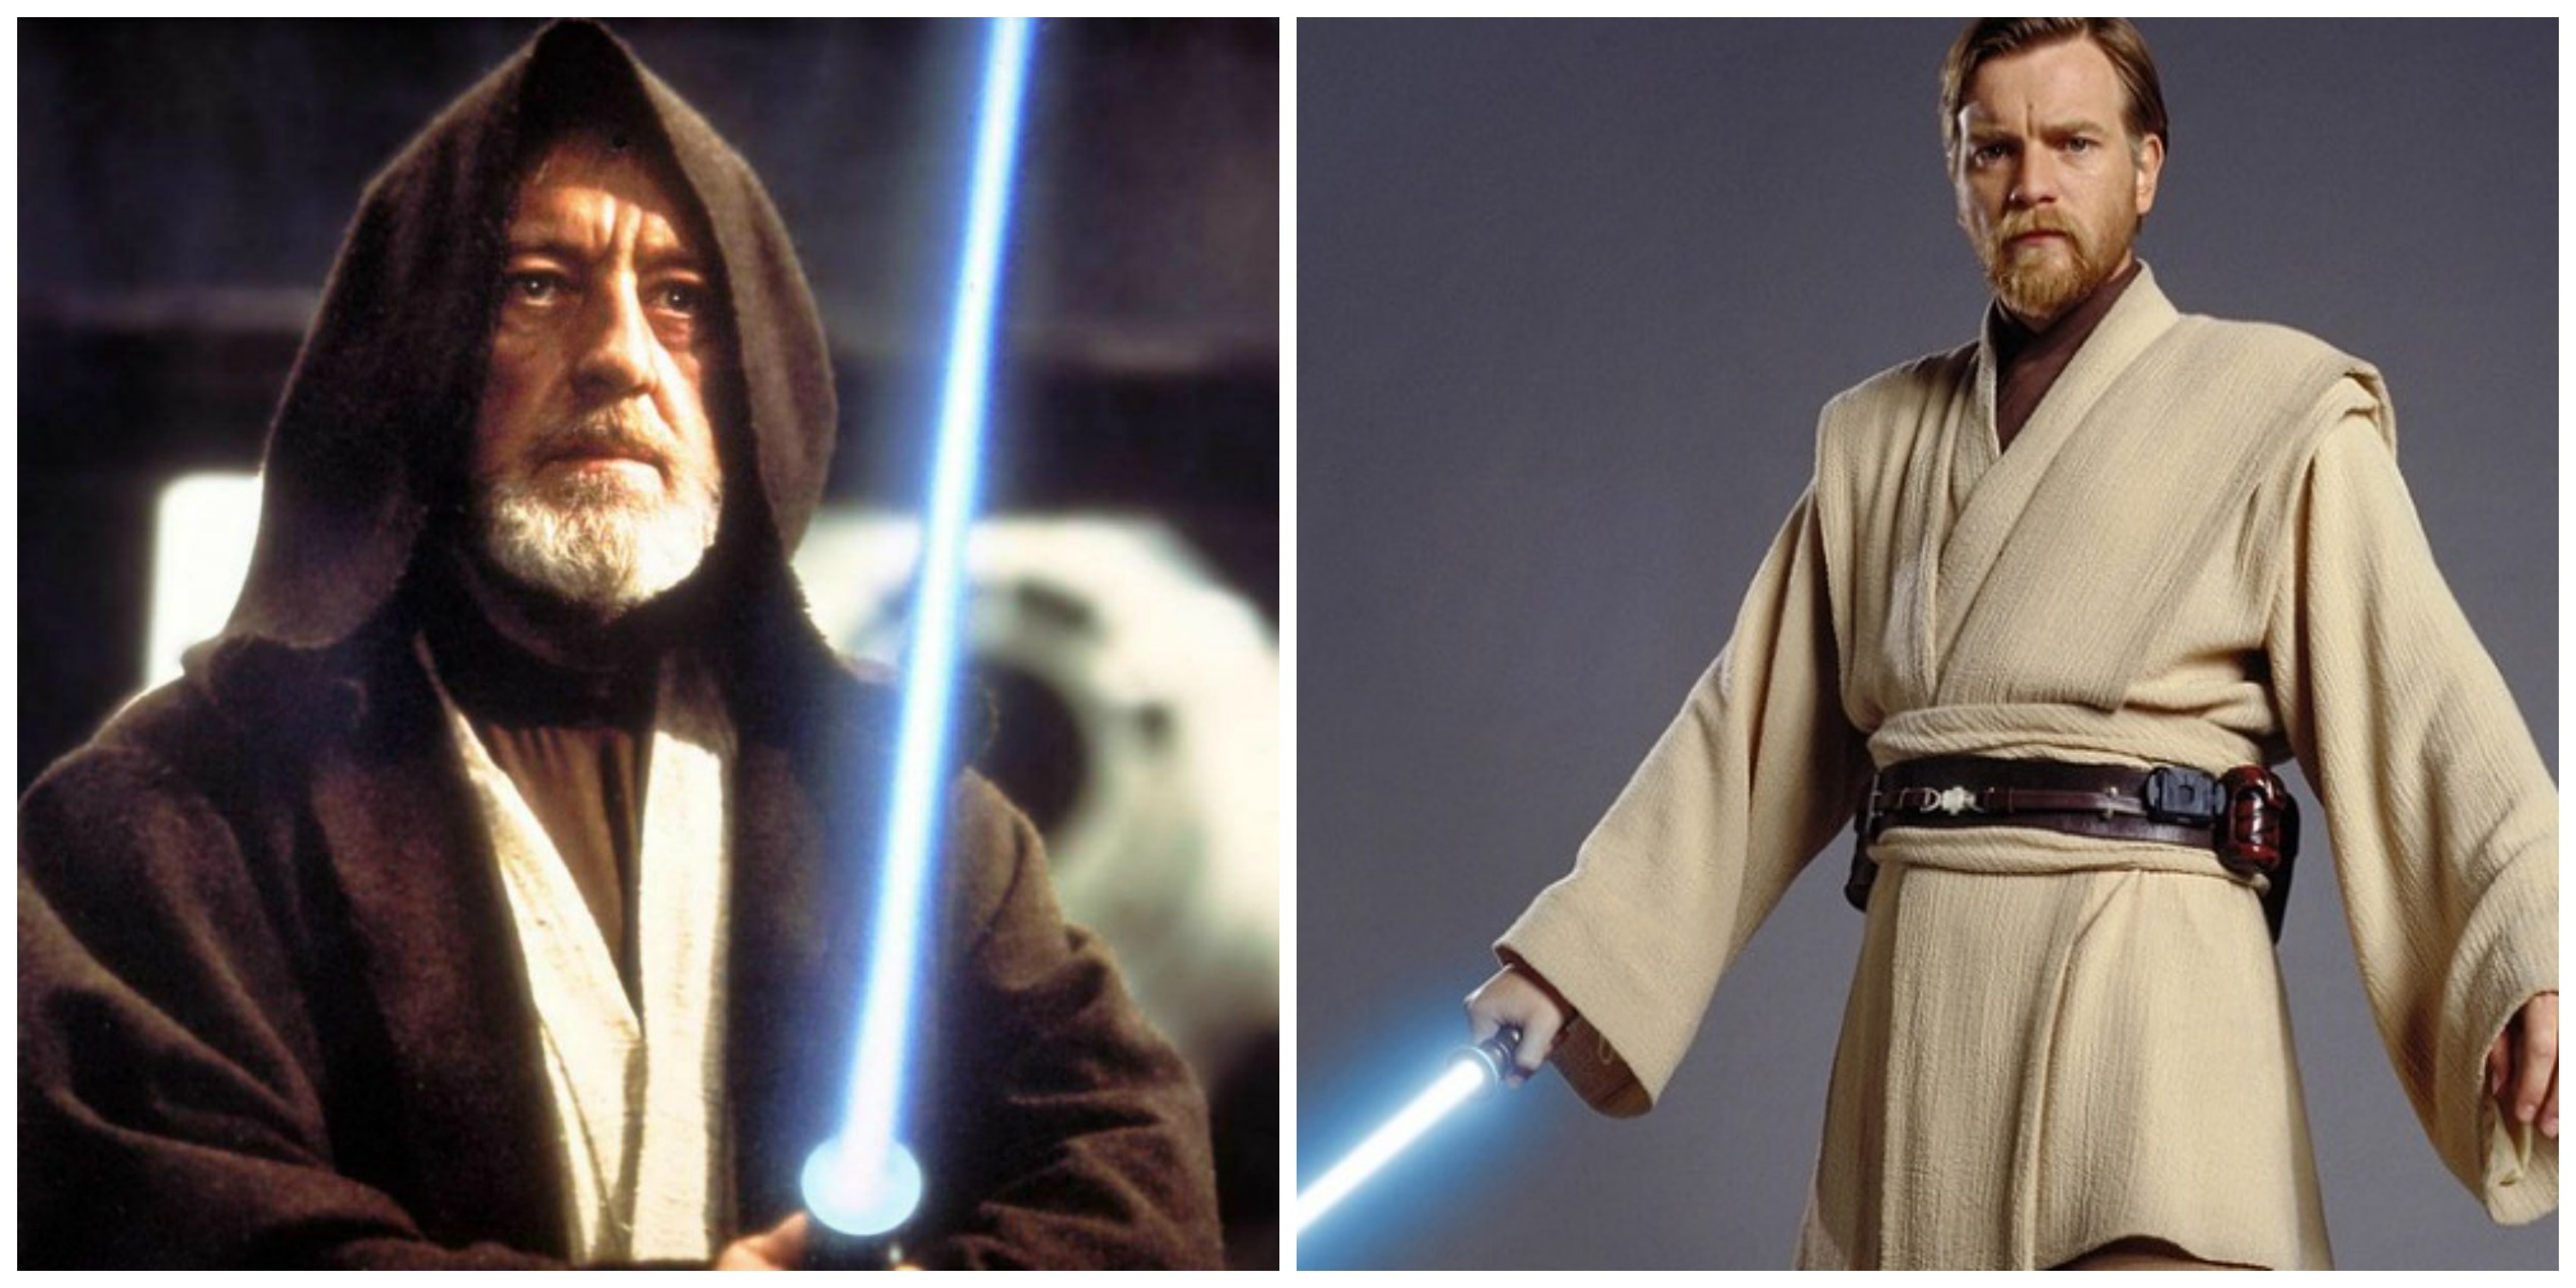 Lucasfilm reportedly developing Obi-Wan Kenobi spinoff film